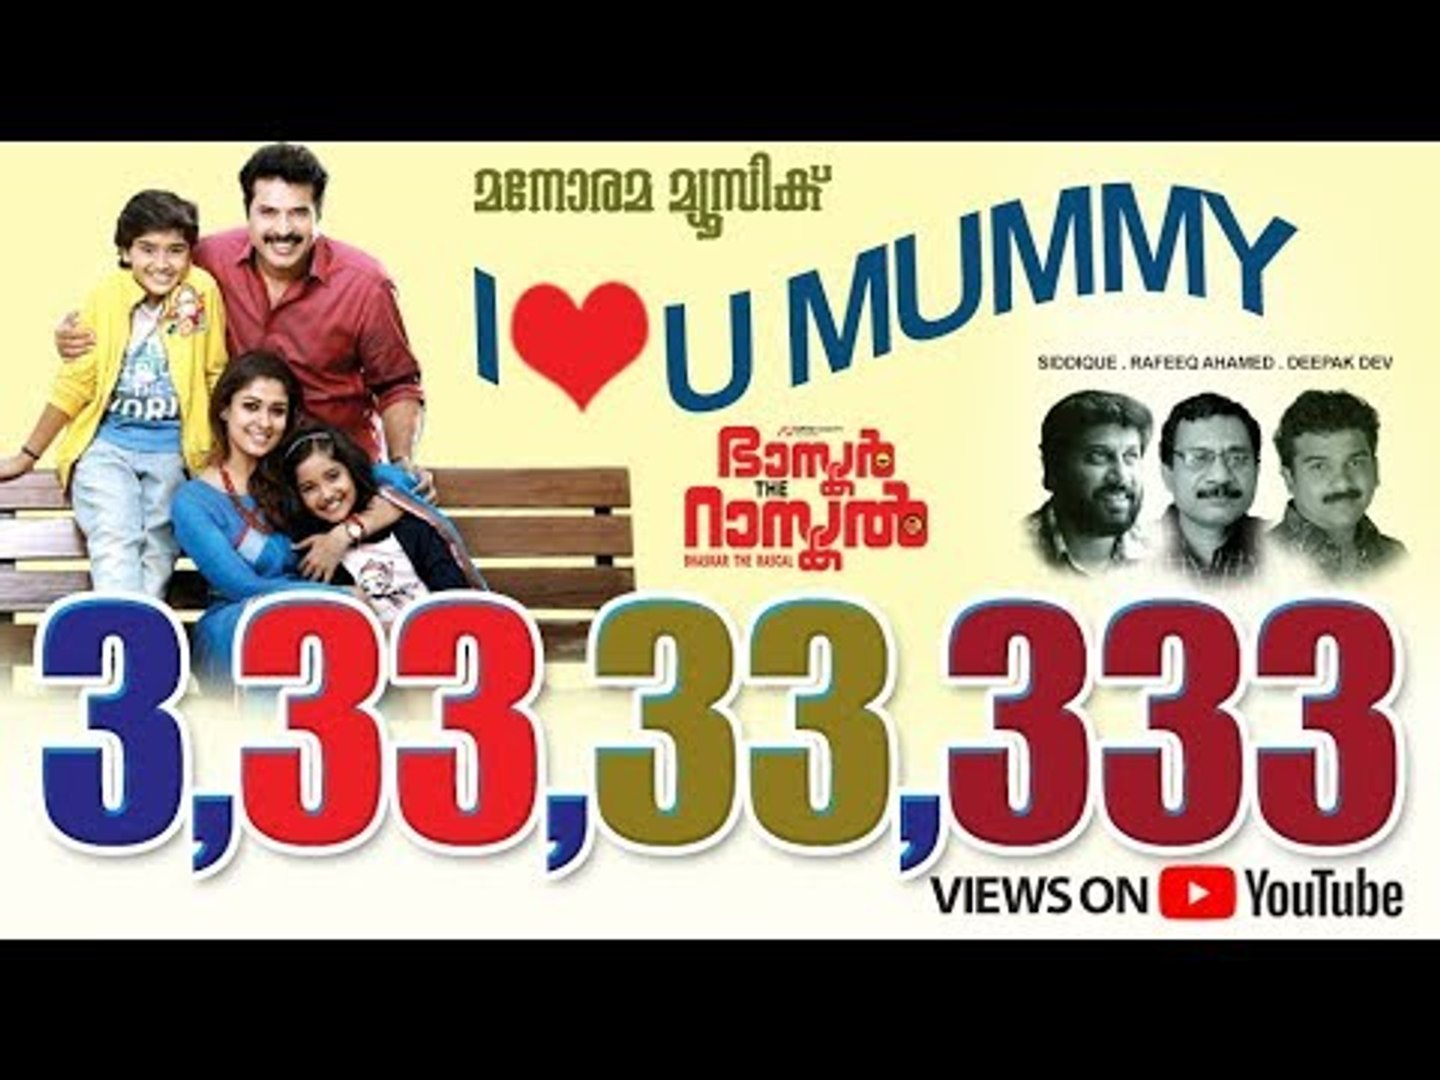 I Love You Mummy Song From Bhaskar The Rascal Starring Mammootty Nayanthara Directed By Siddique Video Dailymotion